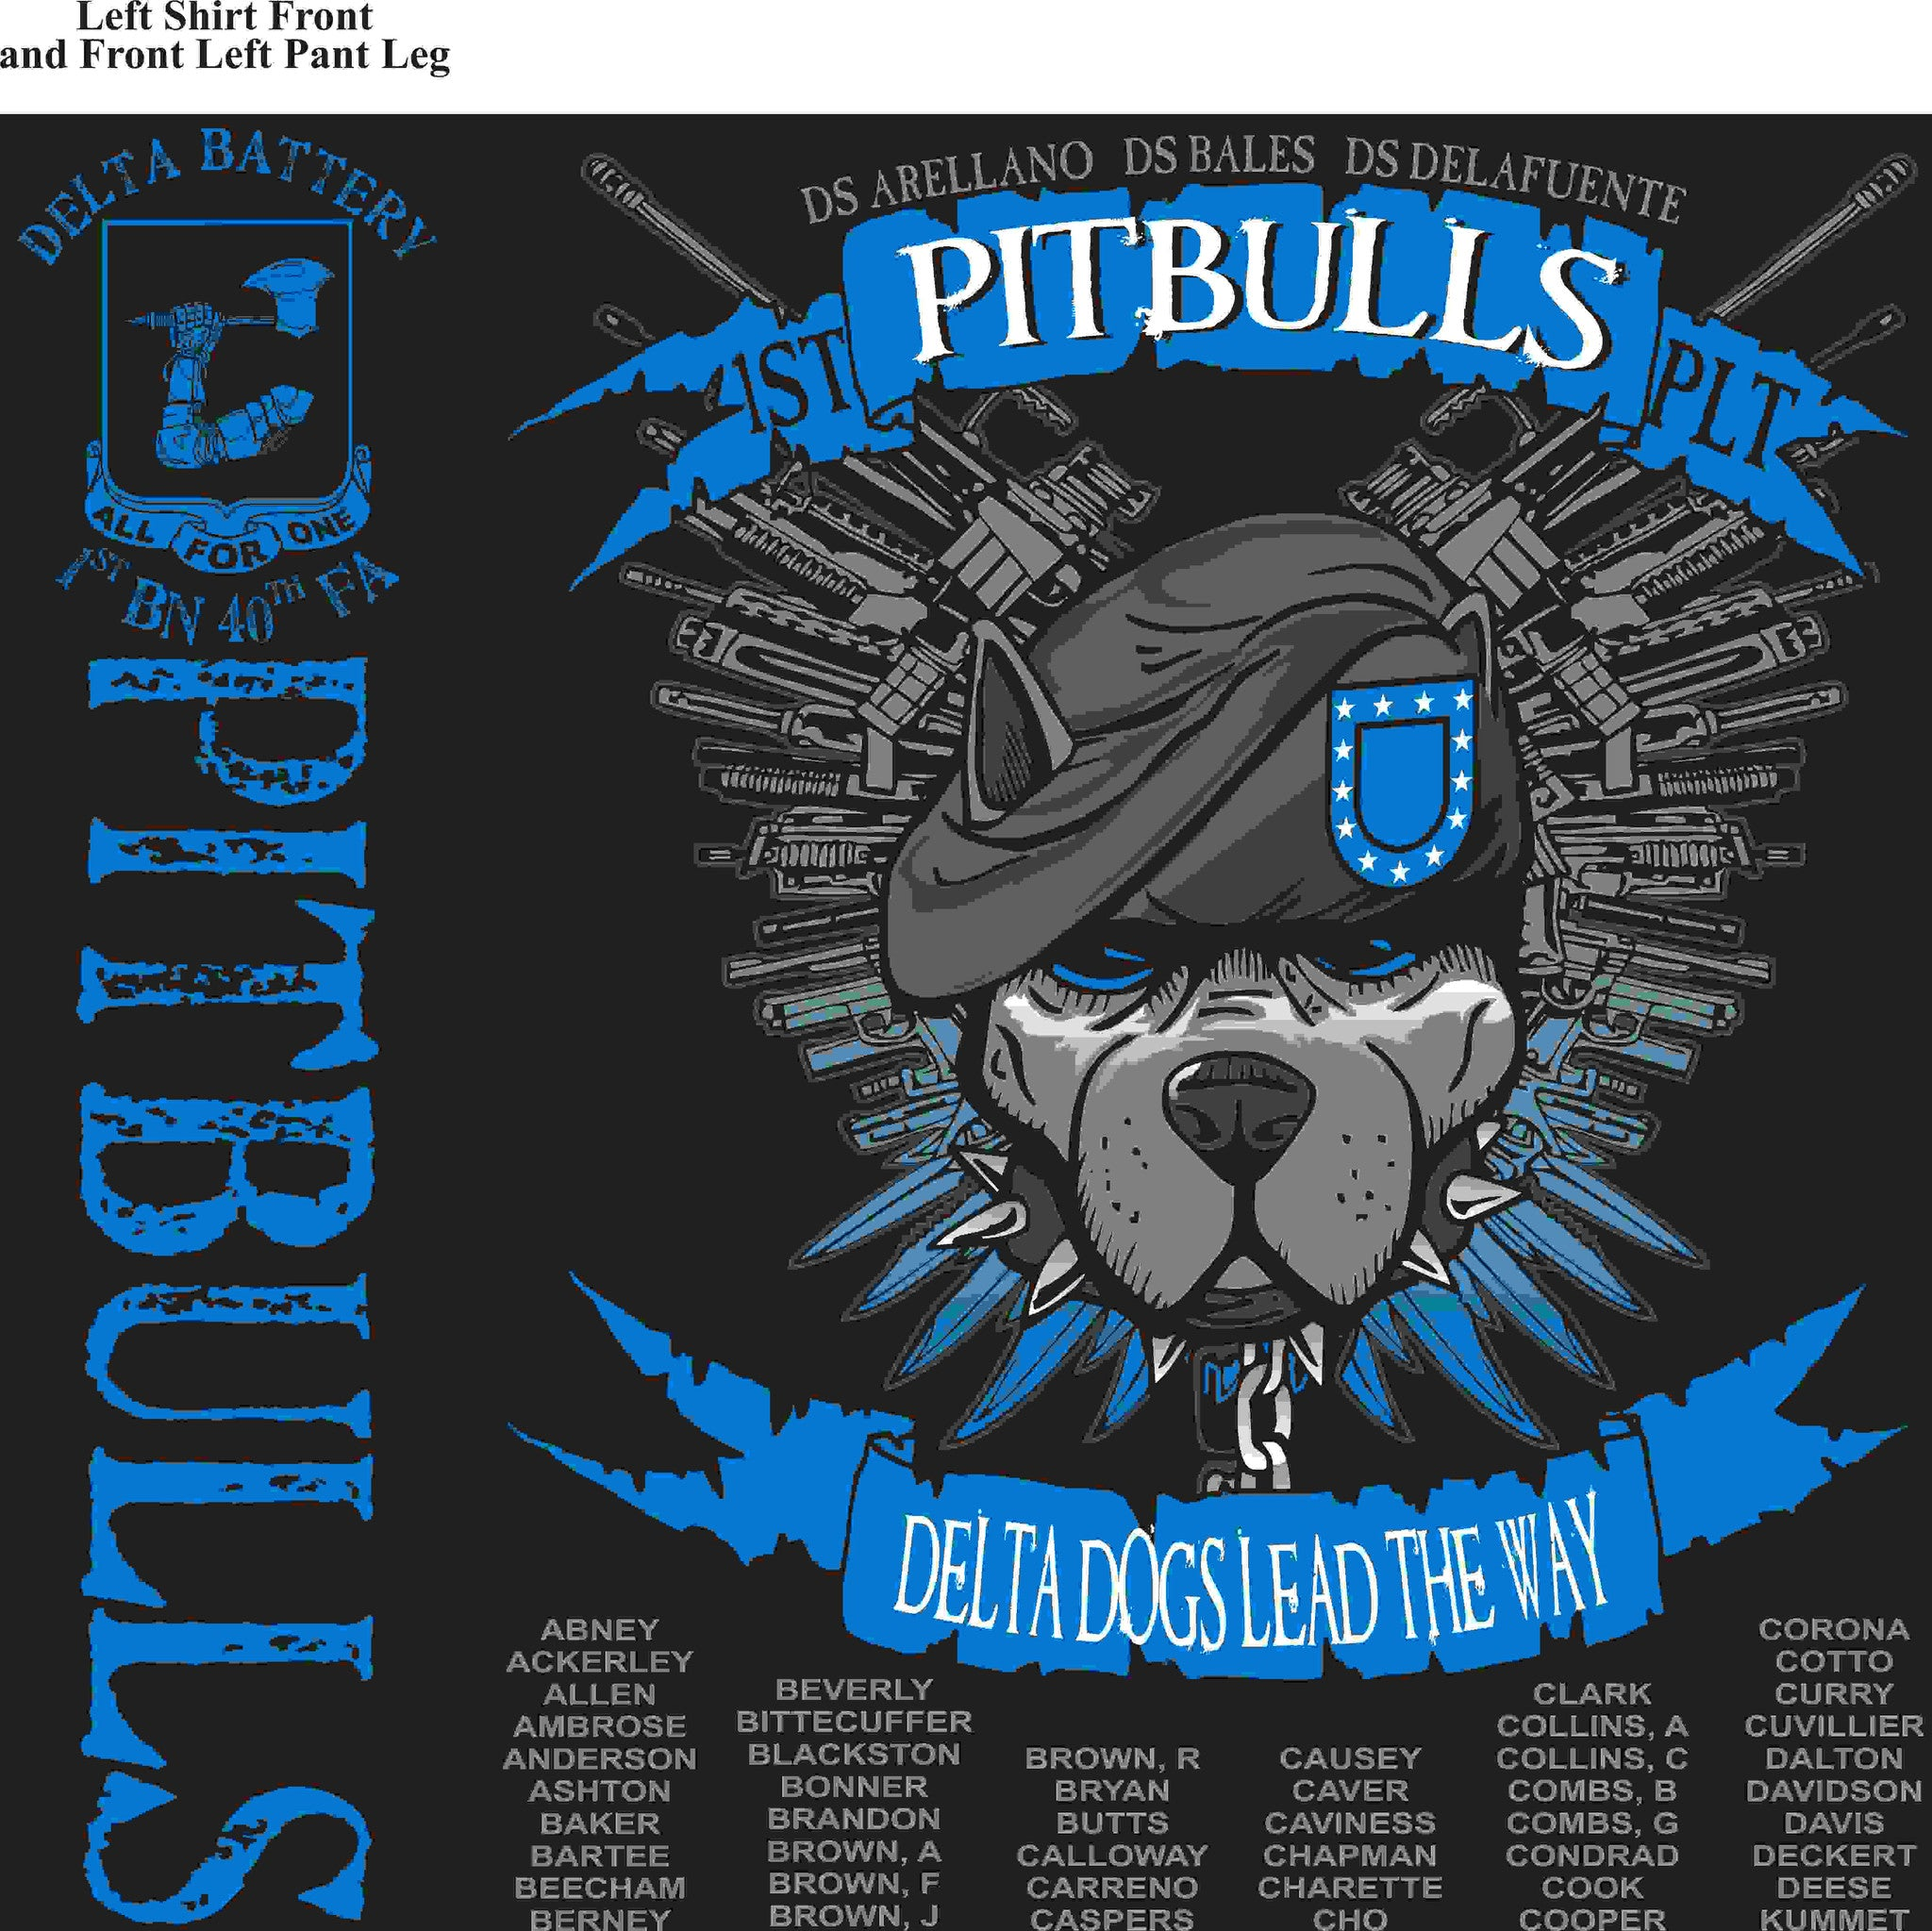 PLATOON SHIRTS (2nd generation print) DELTA 1st 40th PITBULLS MAR 2016